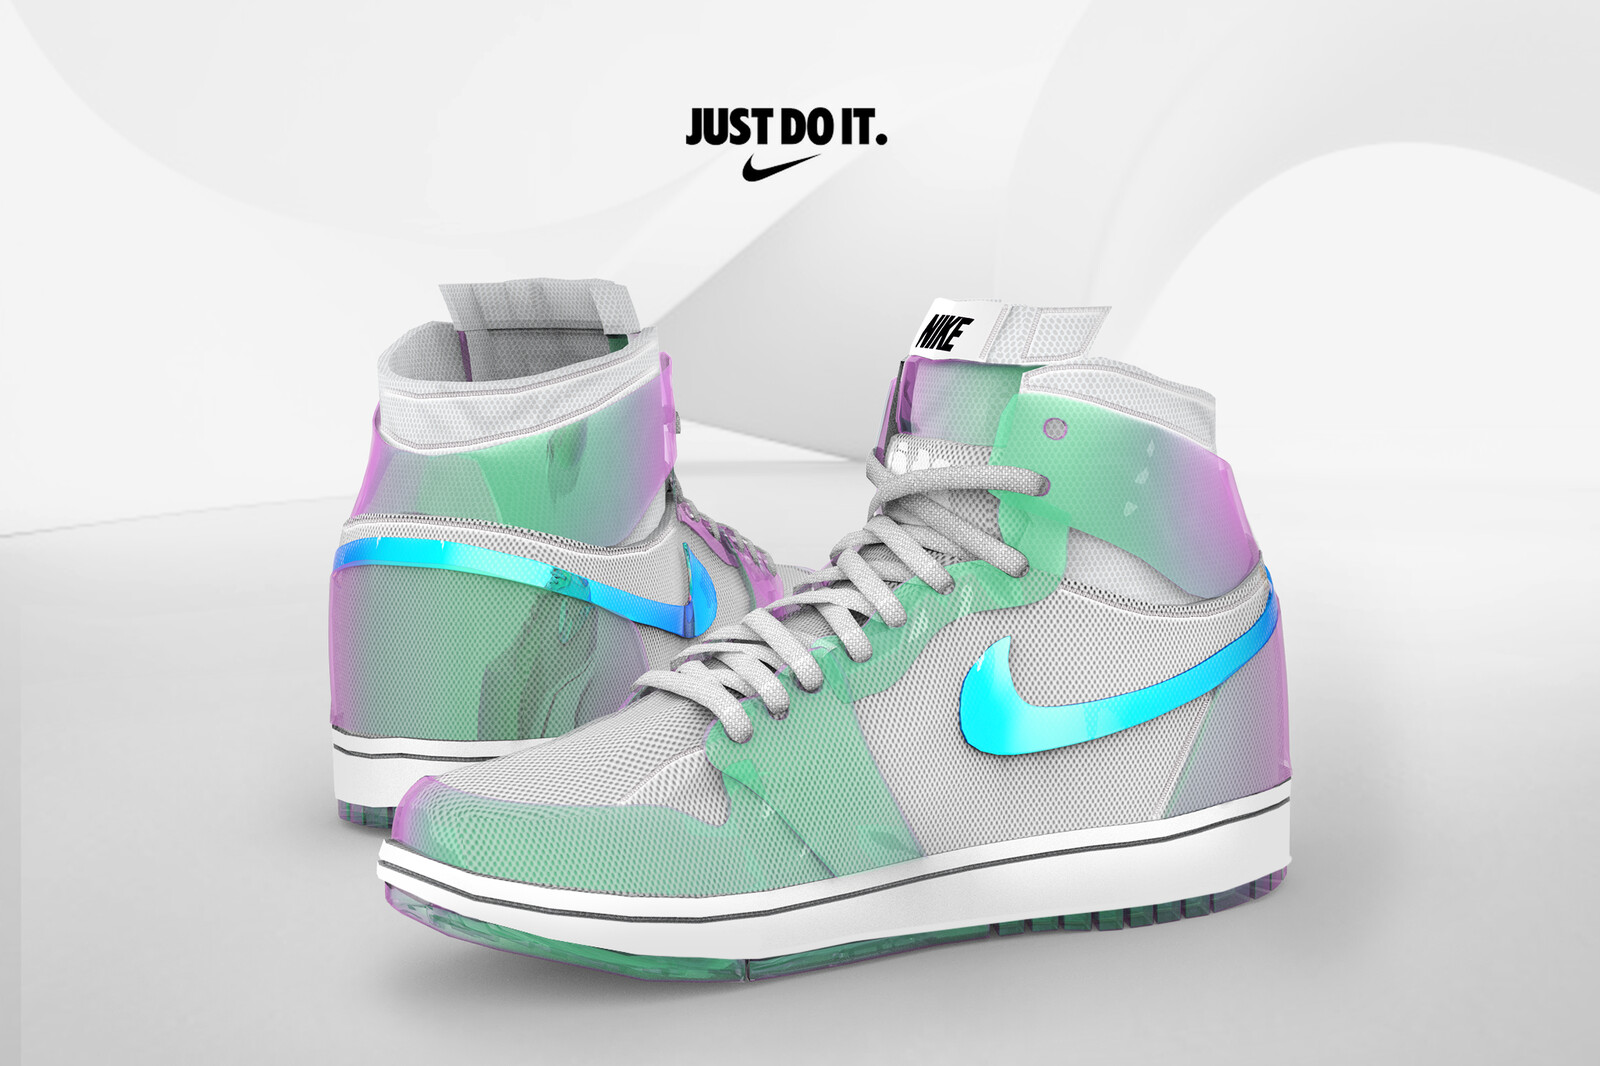 Nike Concept Product Visualization